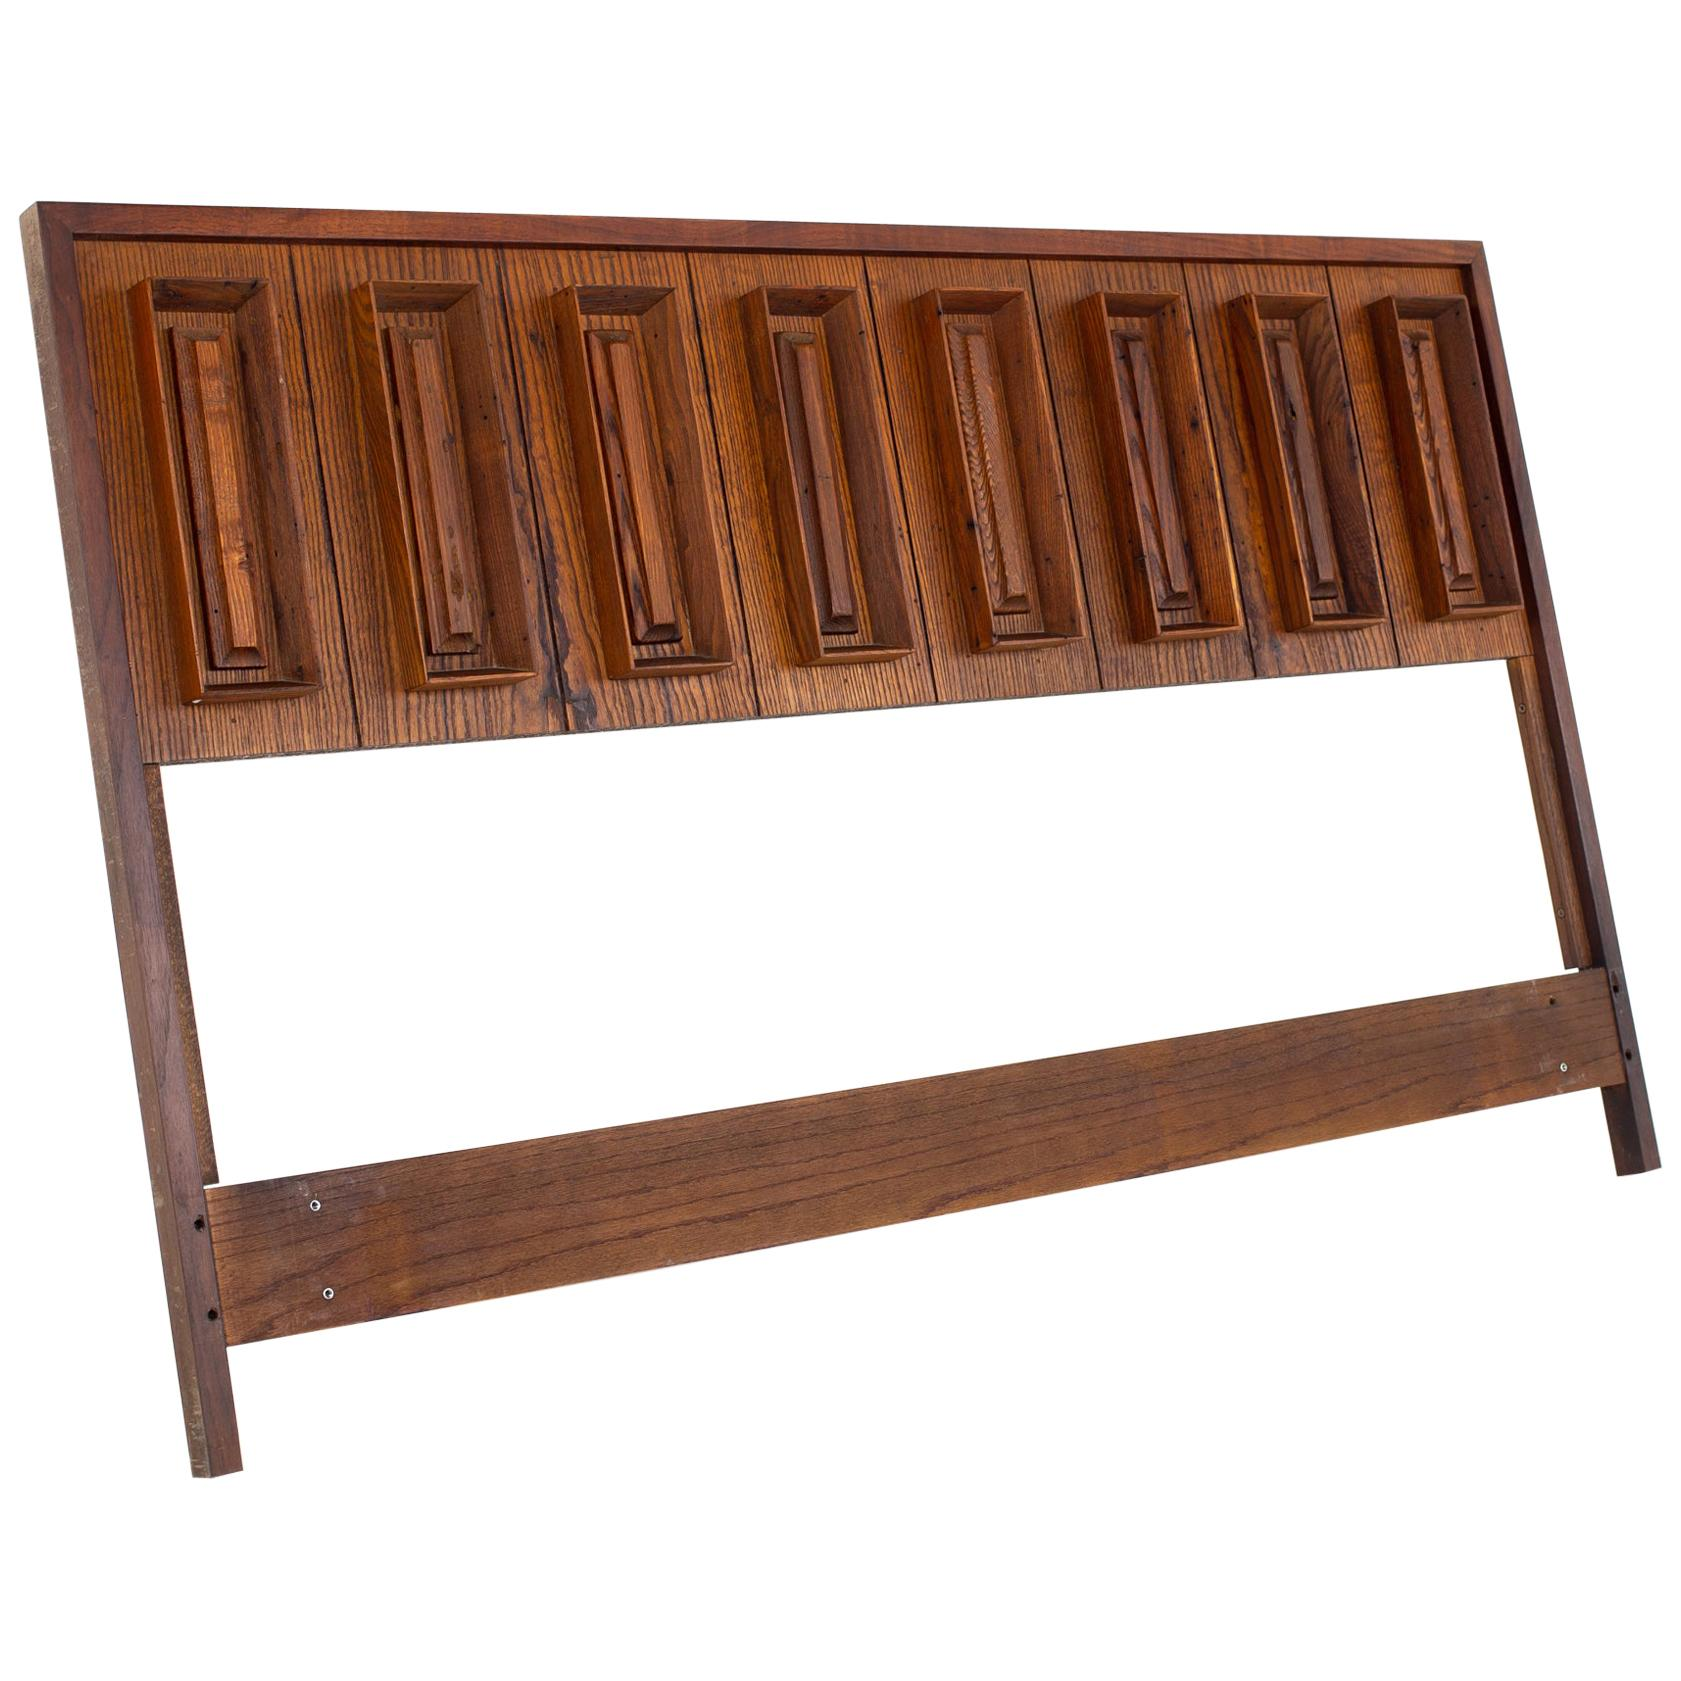 Dillingham Mid Century Pecky Cypress and Walnut Queen Headboard